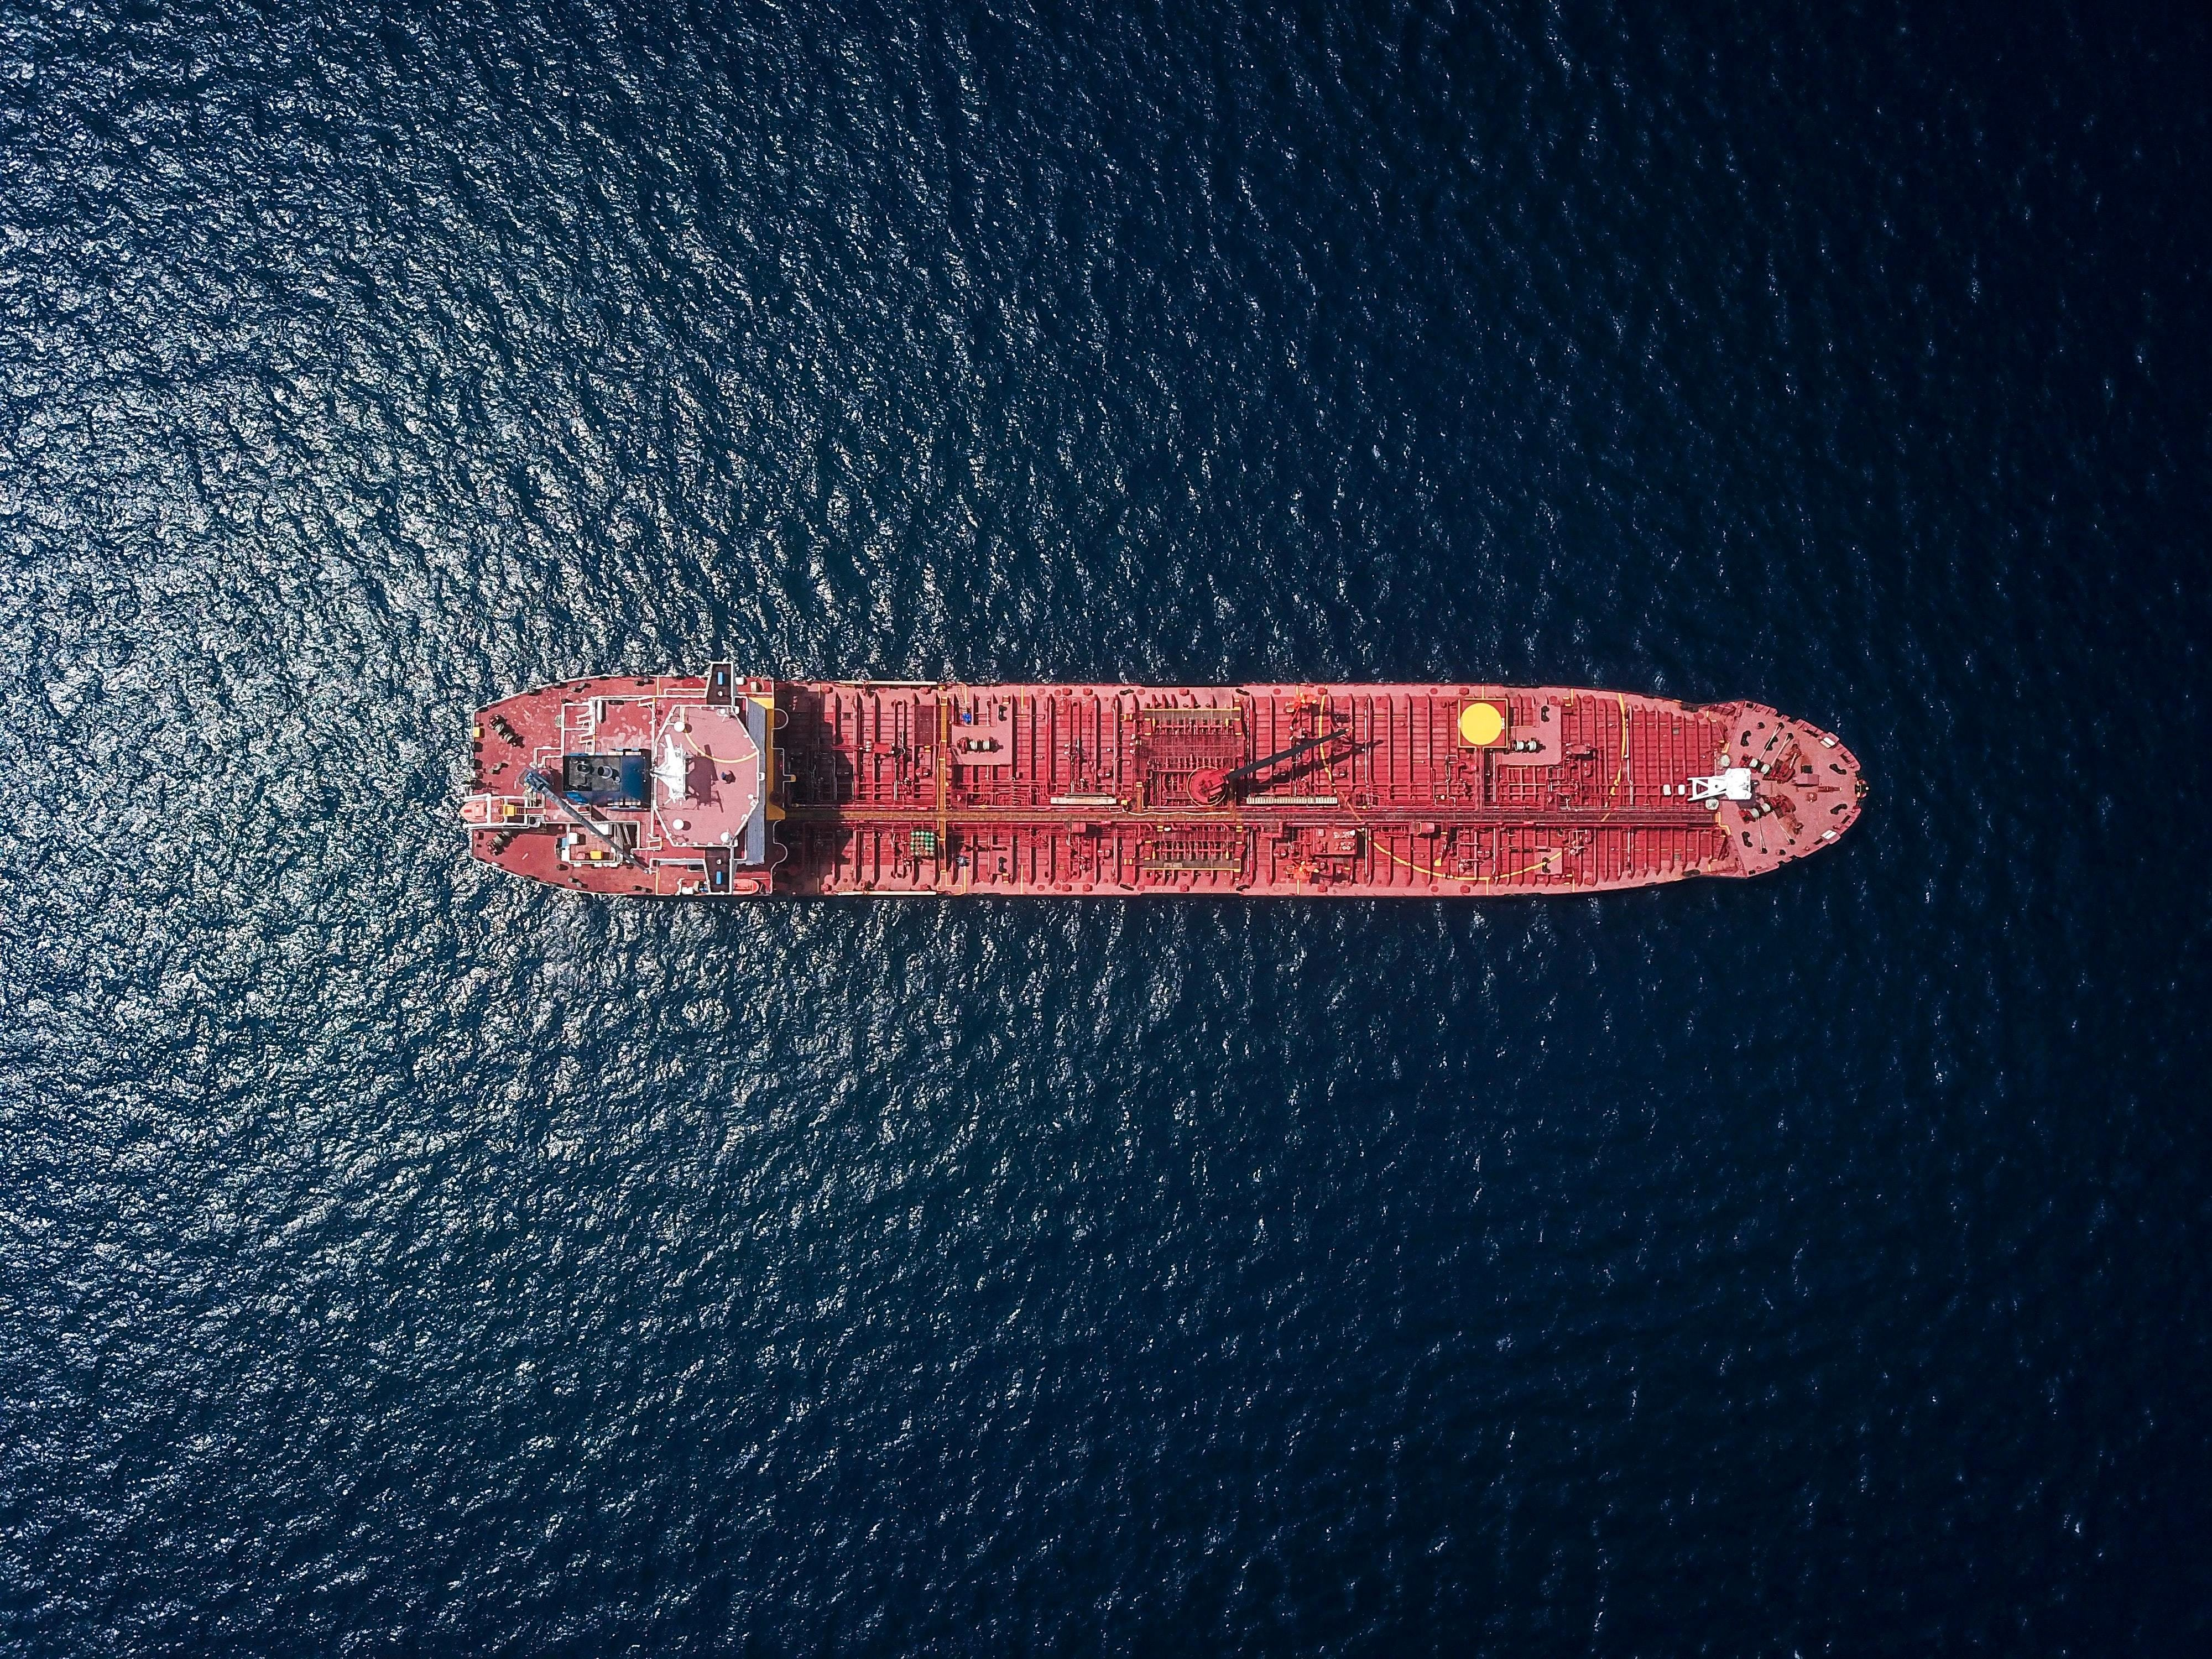 Like oil, data can be extracted and refined - but how can we transport it to where it's needed most?